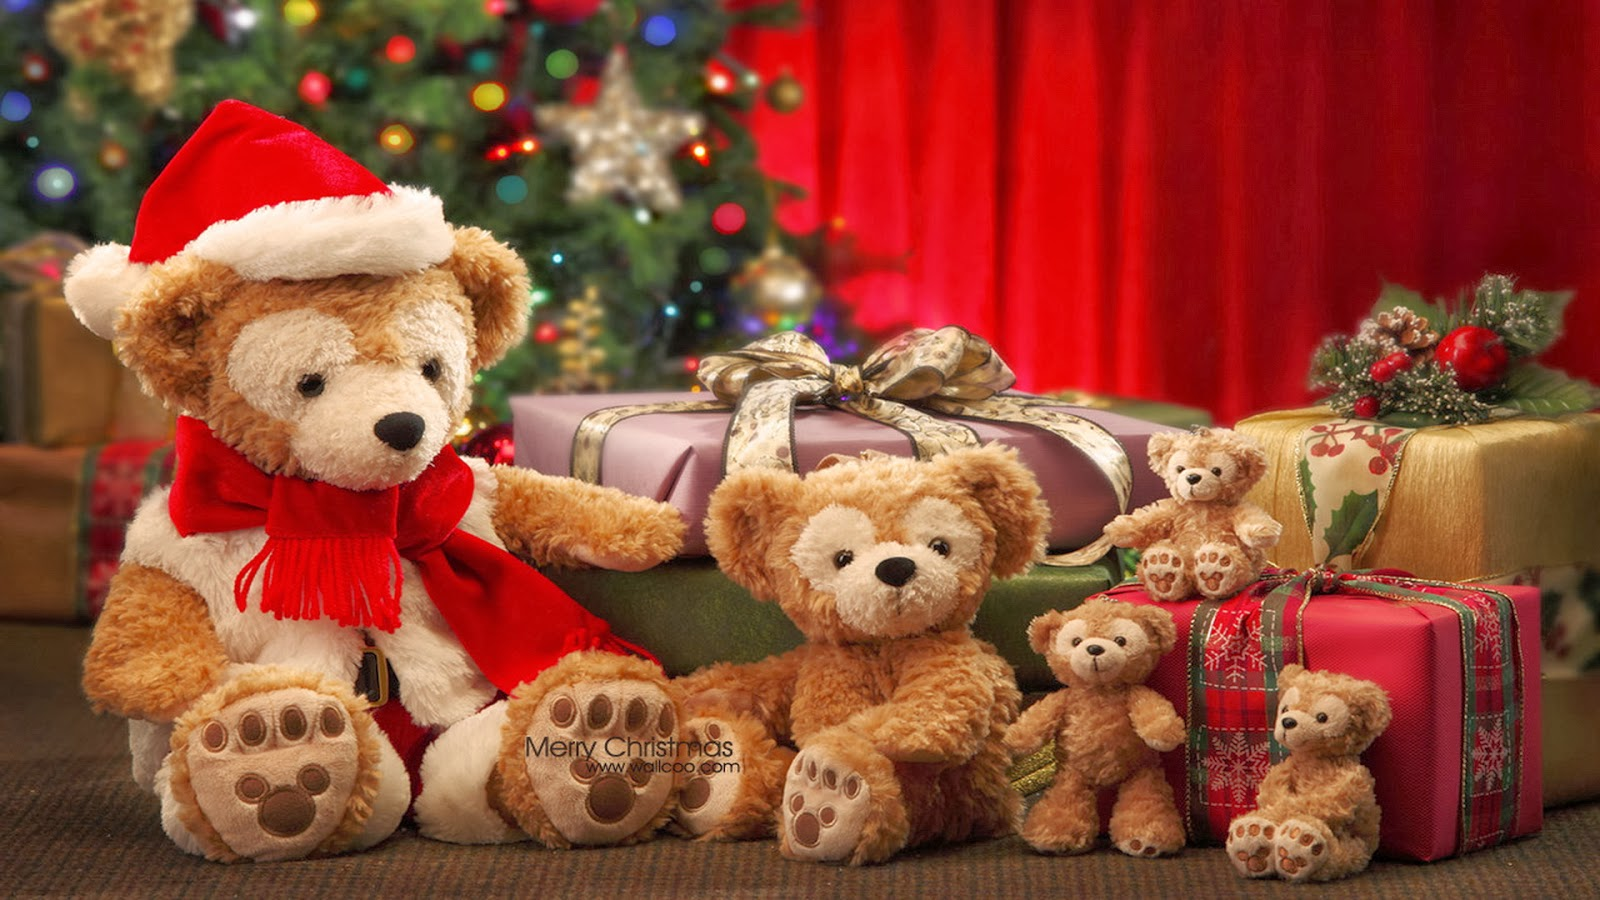 Wallpaper Hd For Desktop Background New Year And Merry Christmas Gifts Hd Wallpapers Pictures And Images